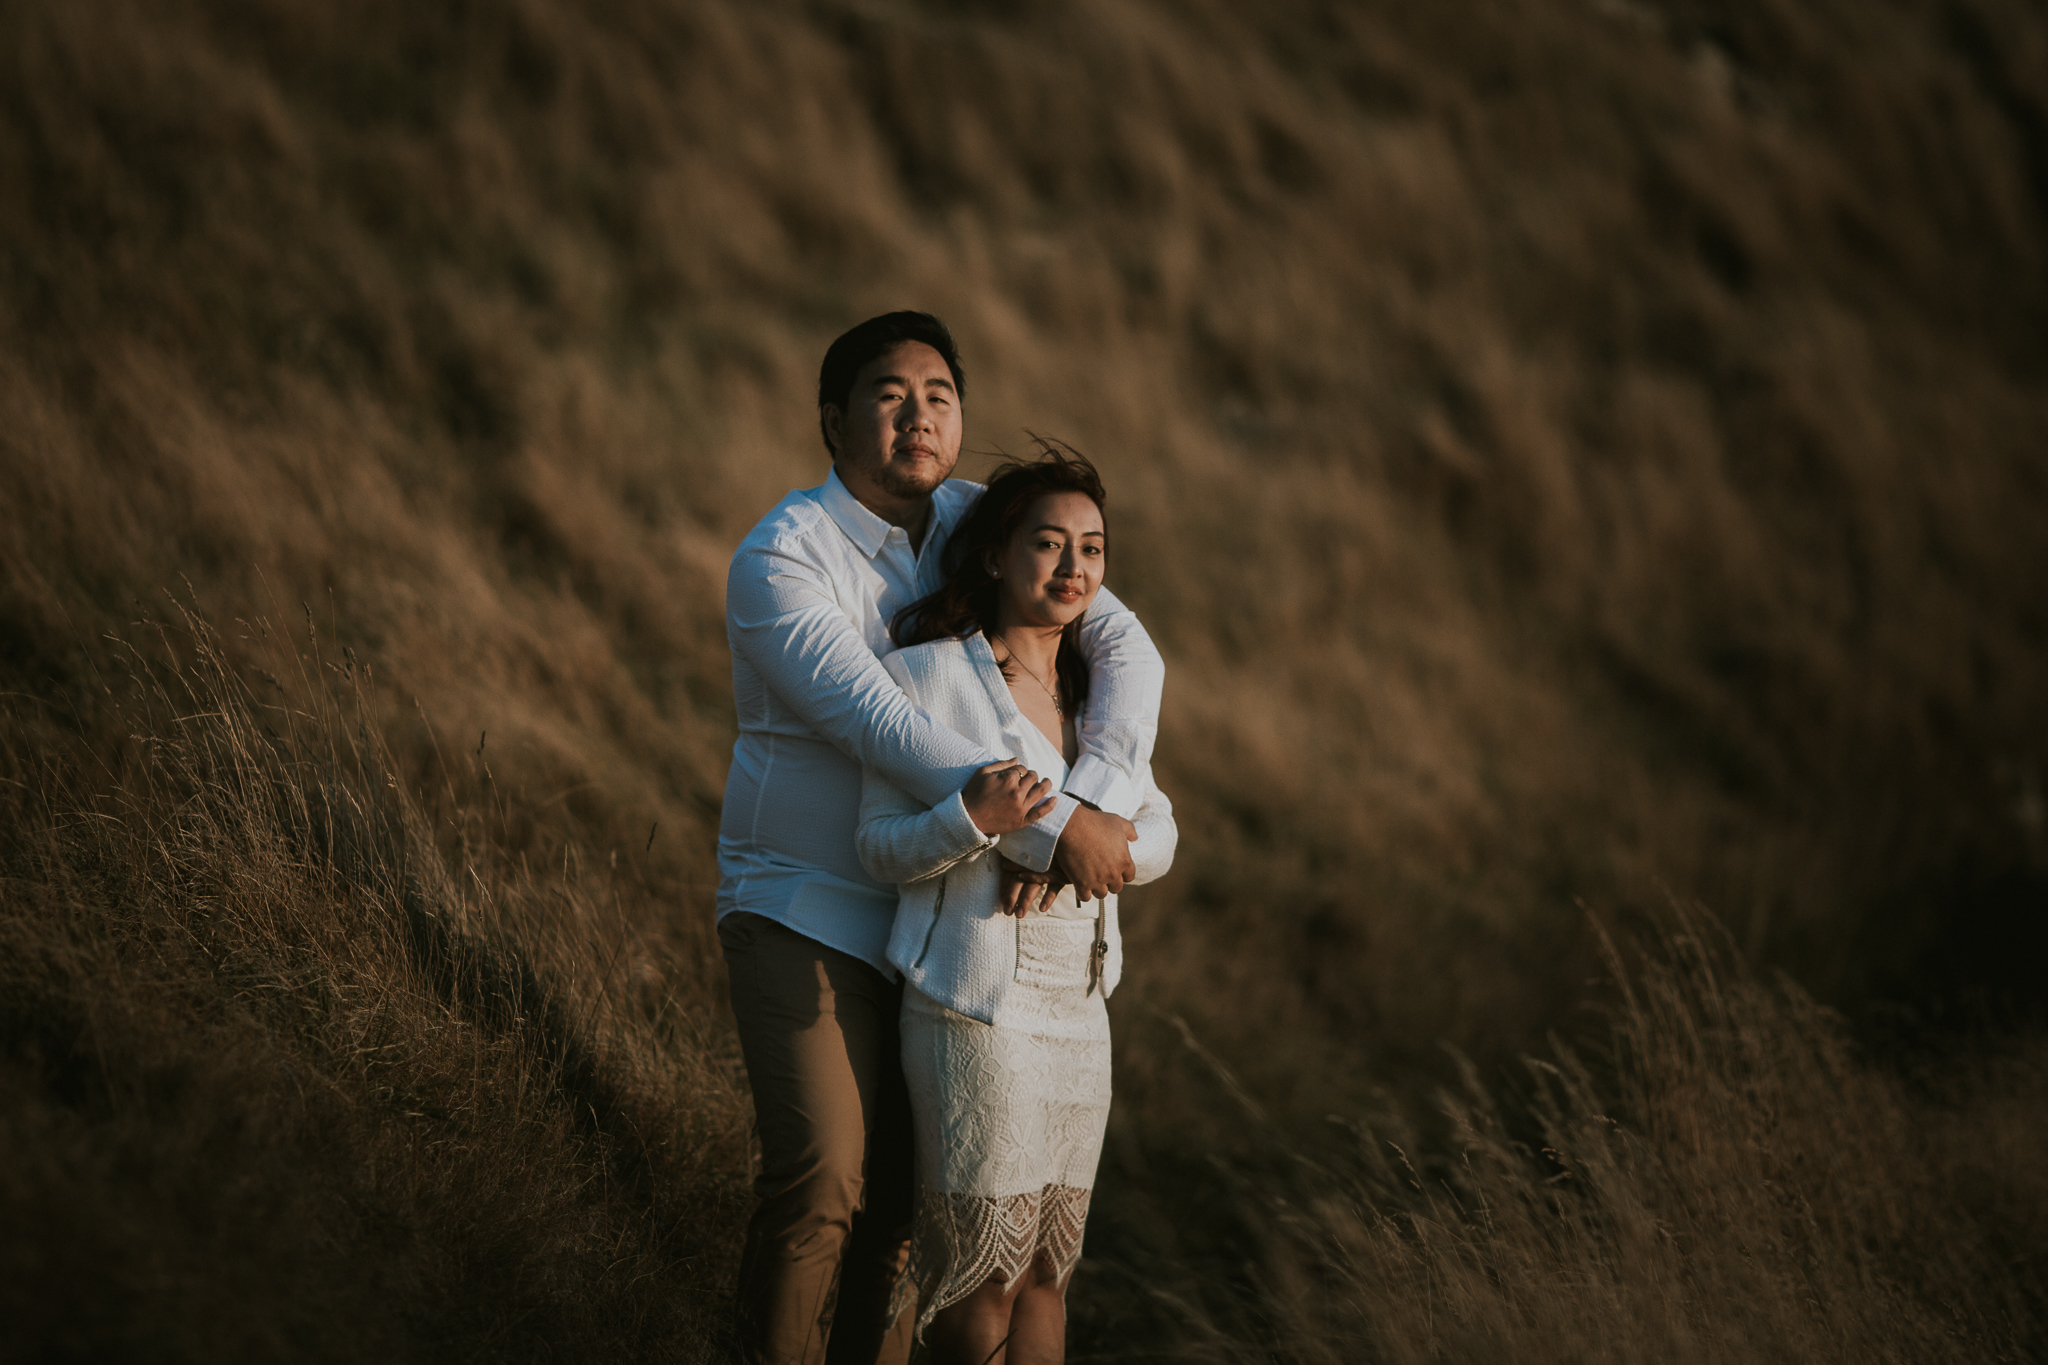 Wedding Photographers Hawkes Bay Te Mata Peak Engagement Shoot Sunset-5.jpg